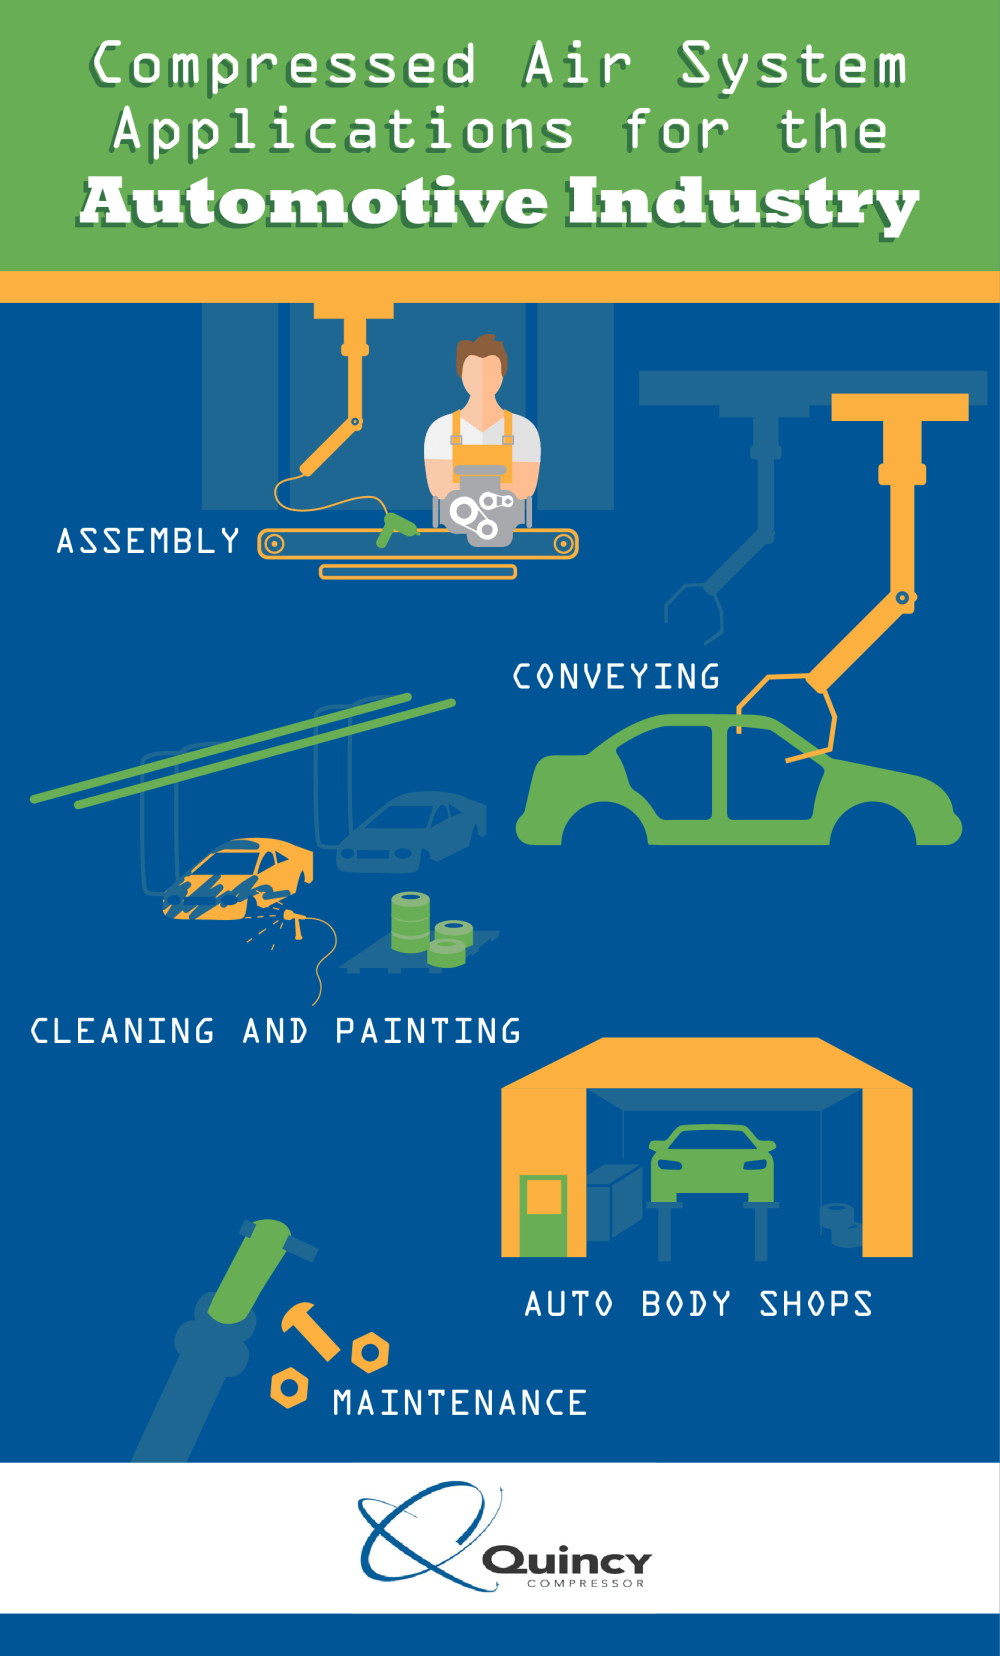 medium resolution of chapter 5 compressed air systems for the automotive industry